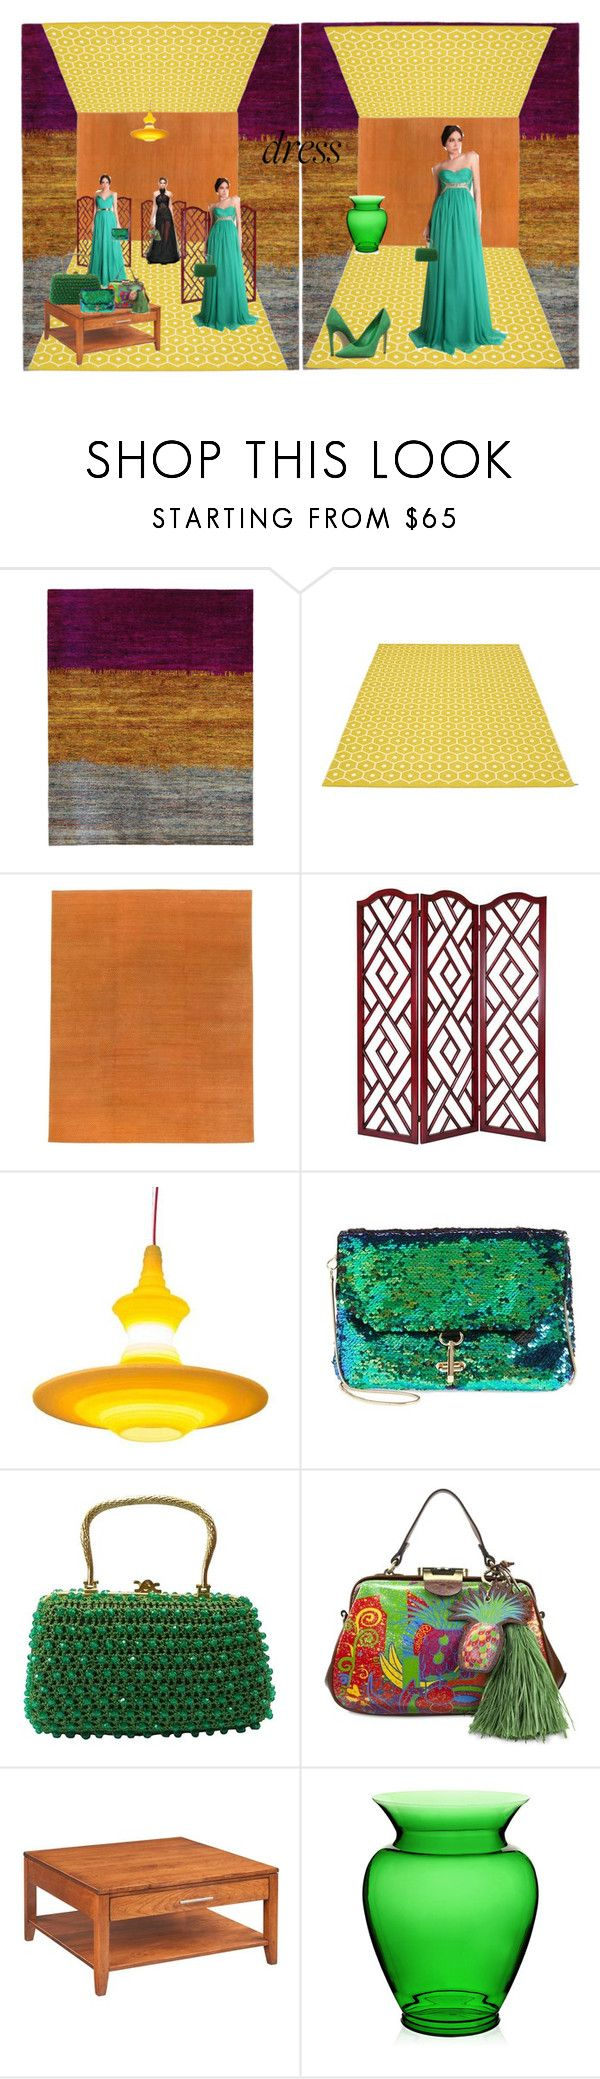 """""""EXTRAÑA ELEGANCIA"""" by abaloriosestilos on Polyvore featuring moda, Pappelina, Innermost, Georges Hobeika, Deux Lux, Patricia Nash, DutchCrafters, Nine West y Kartell"""